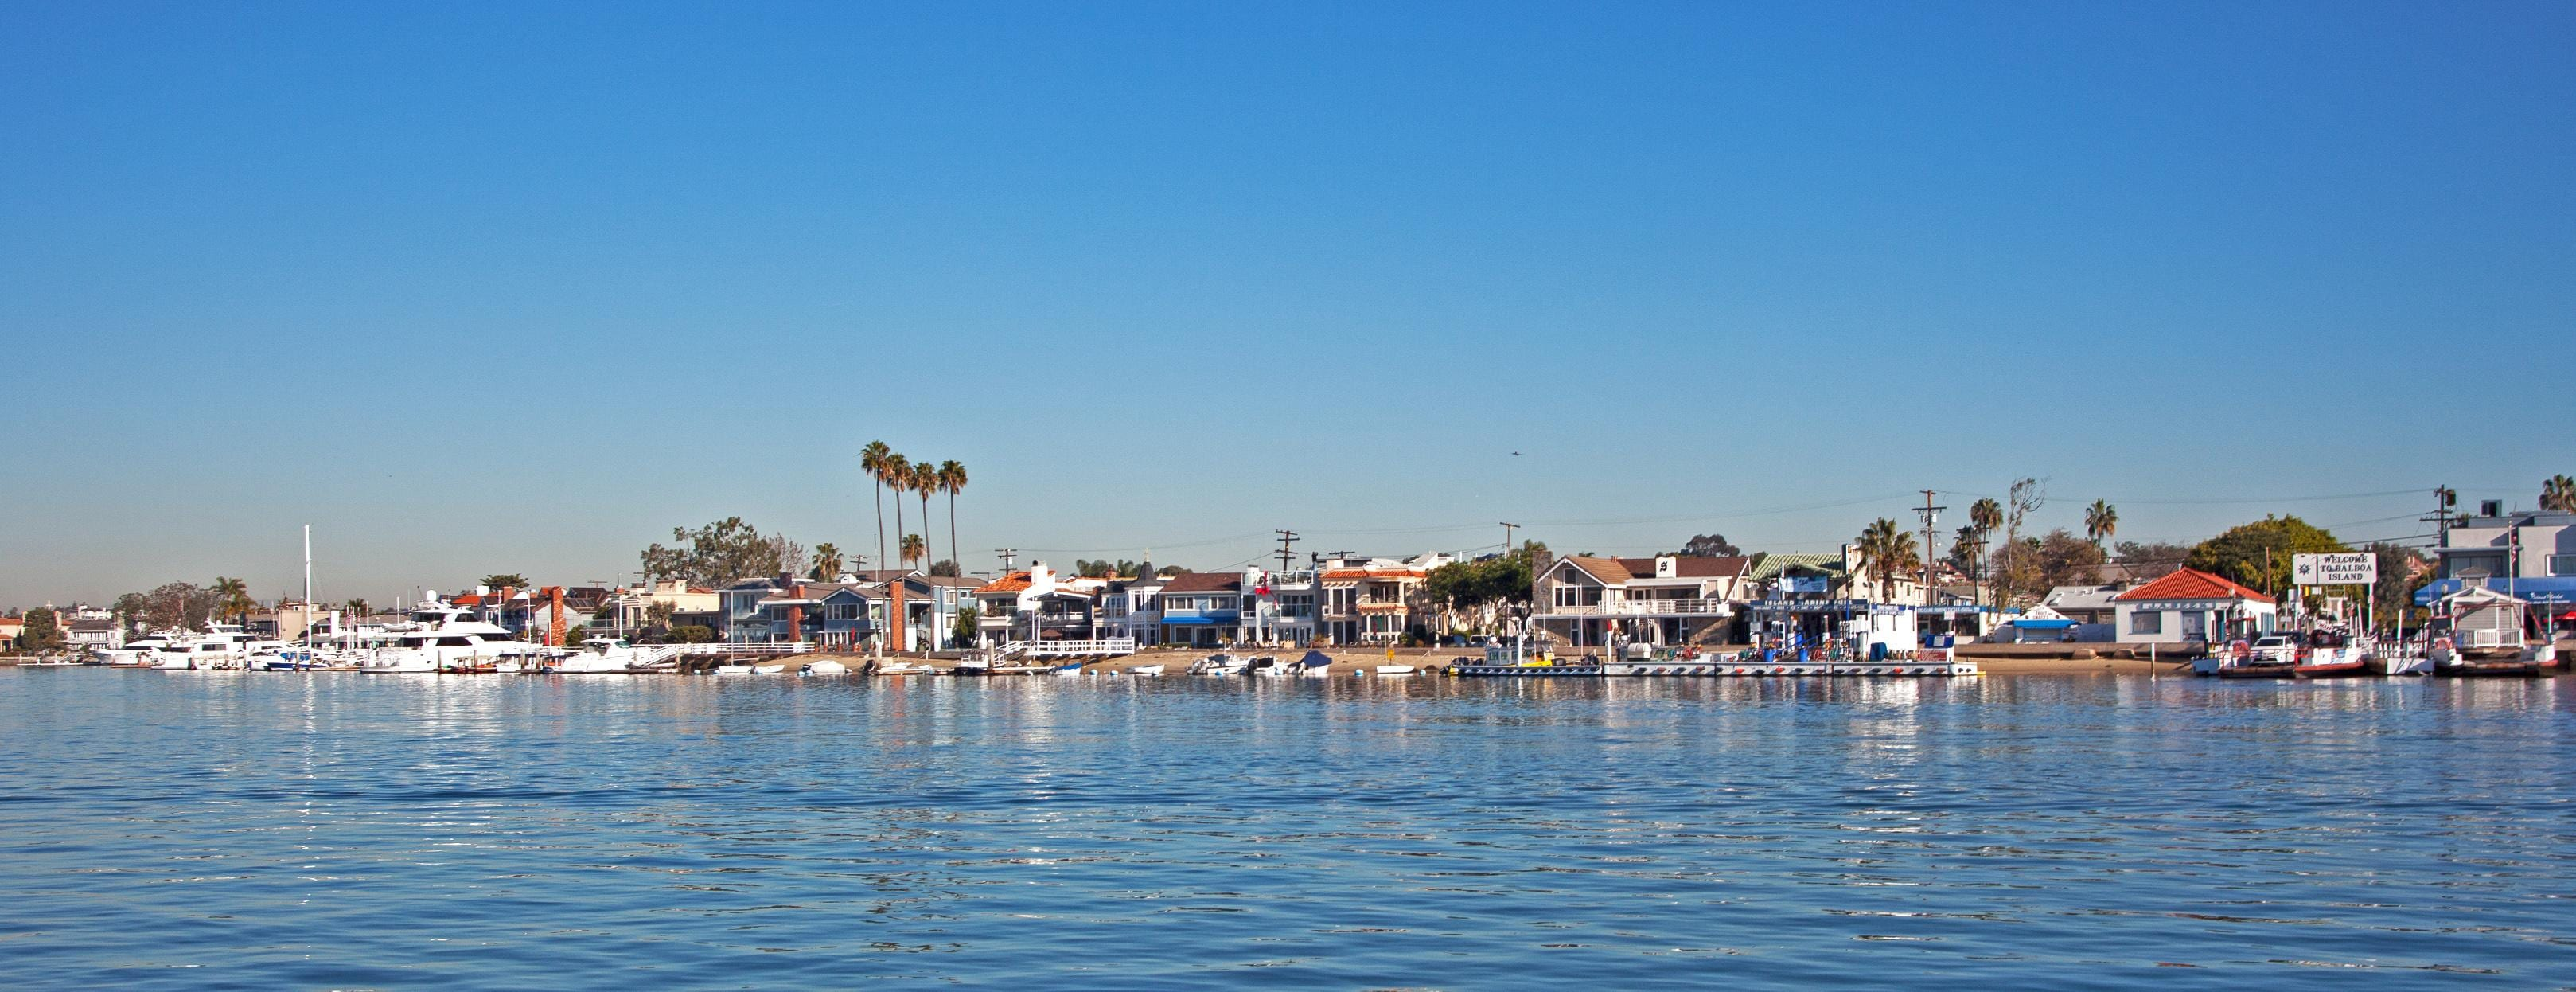 Soak in all the charm Balboa Island has to offer.